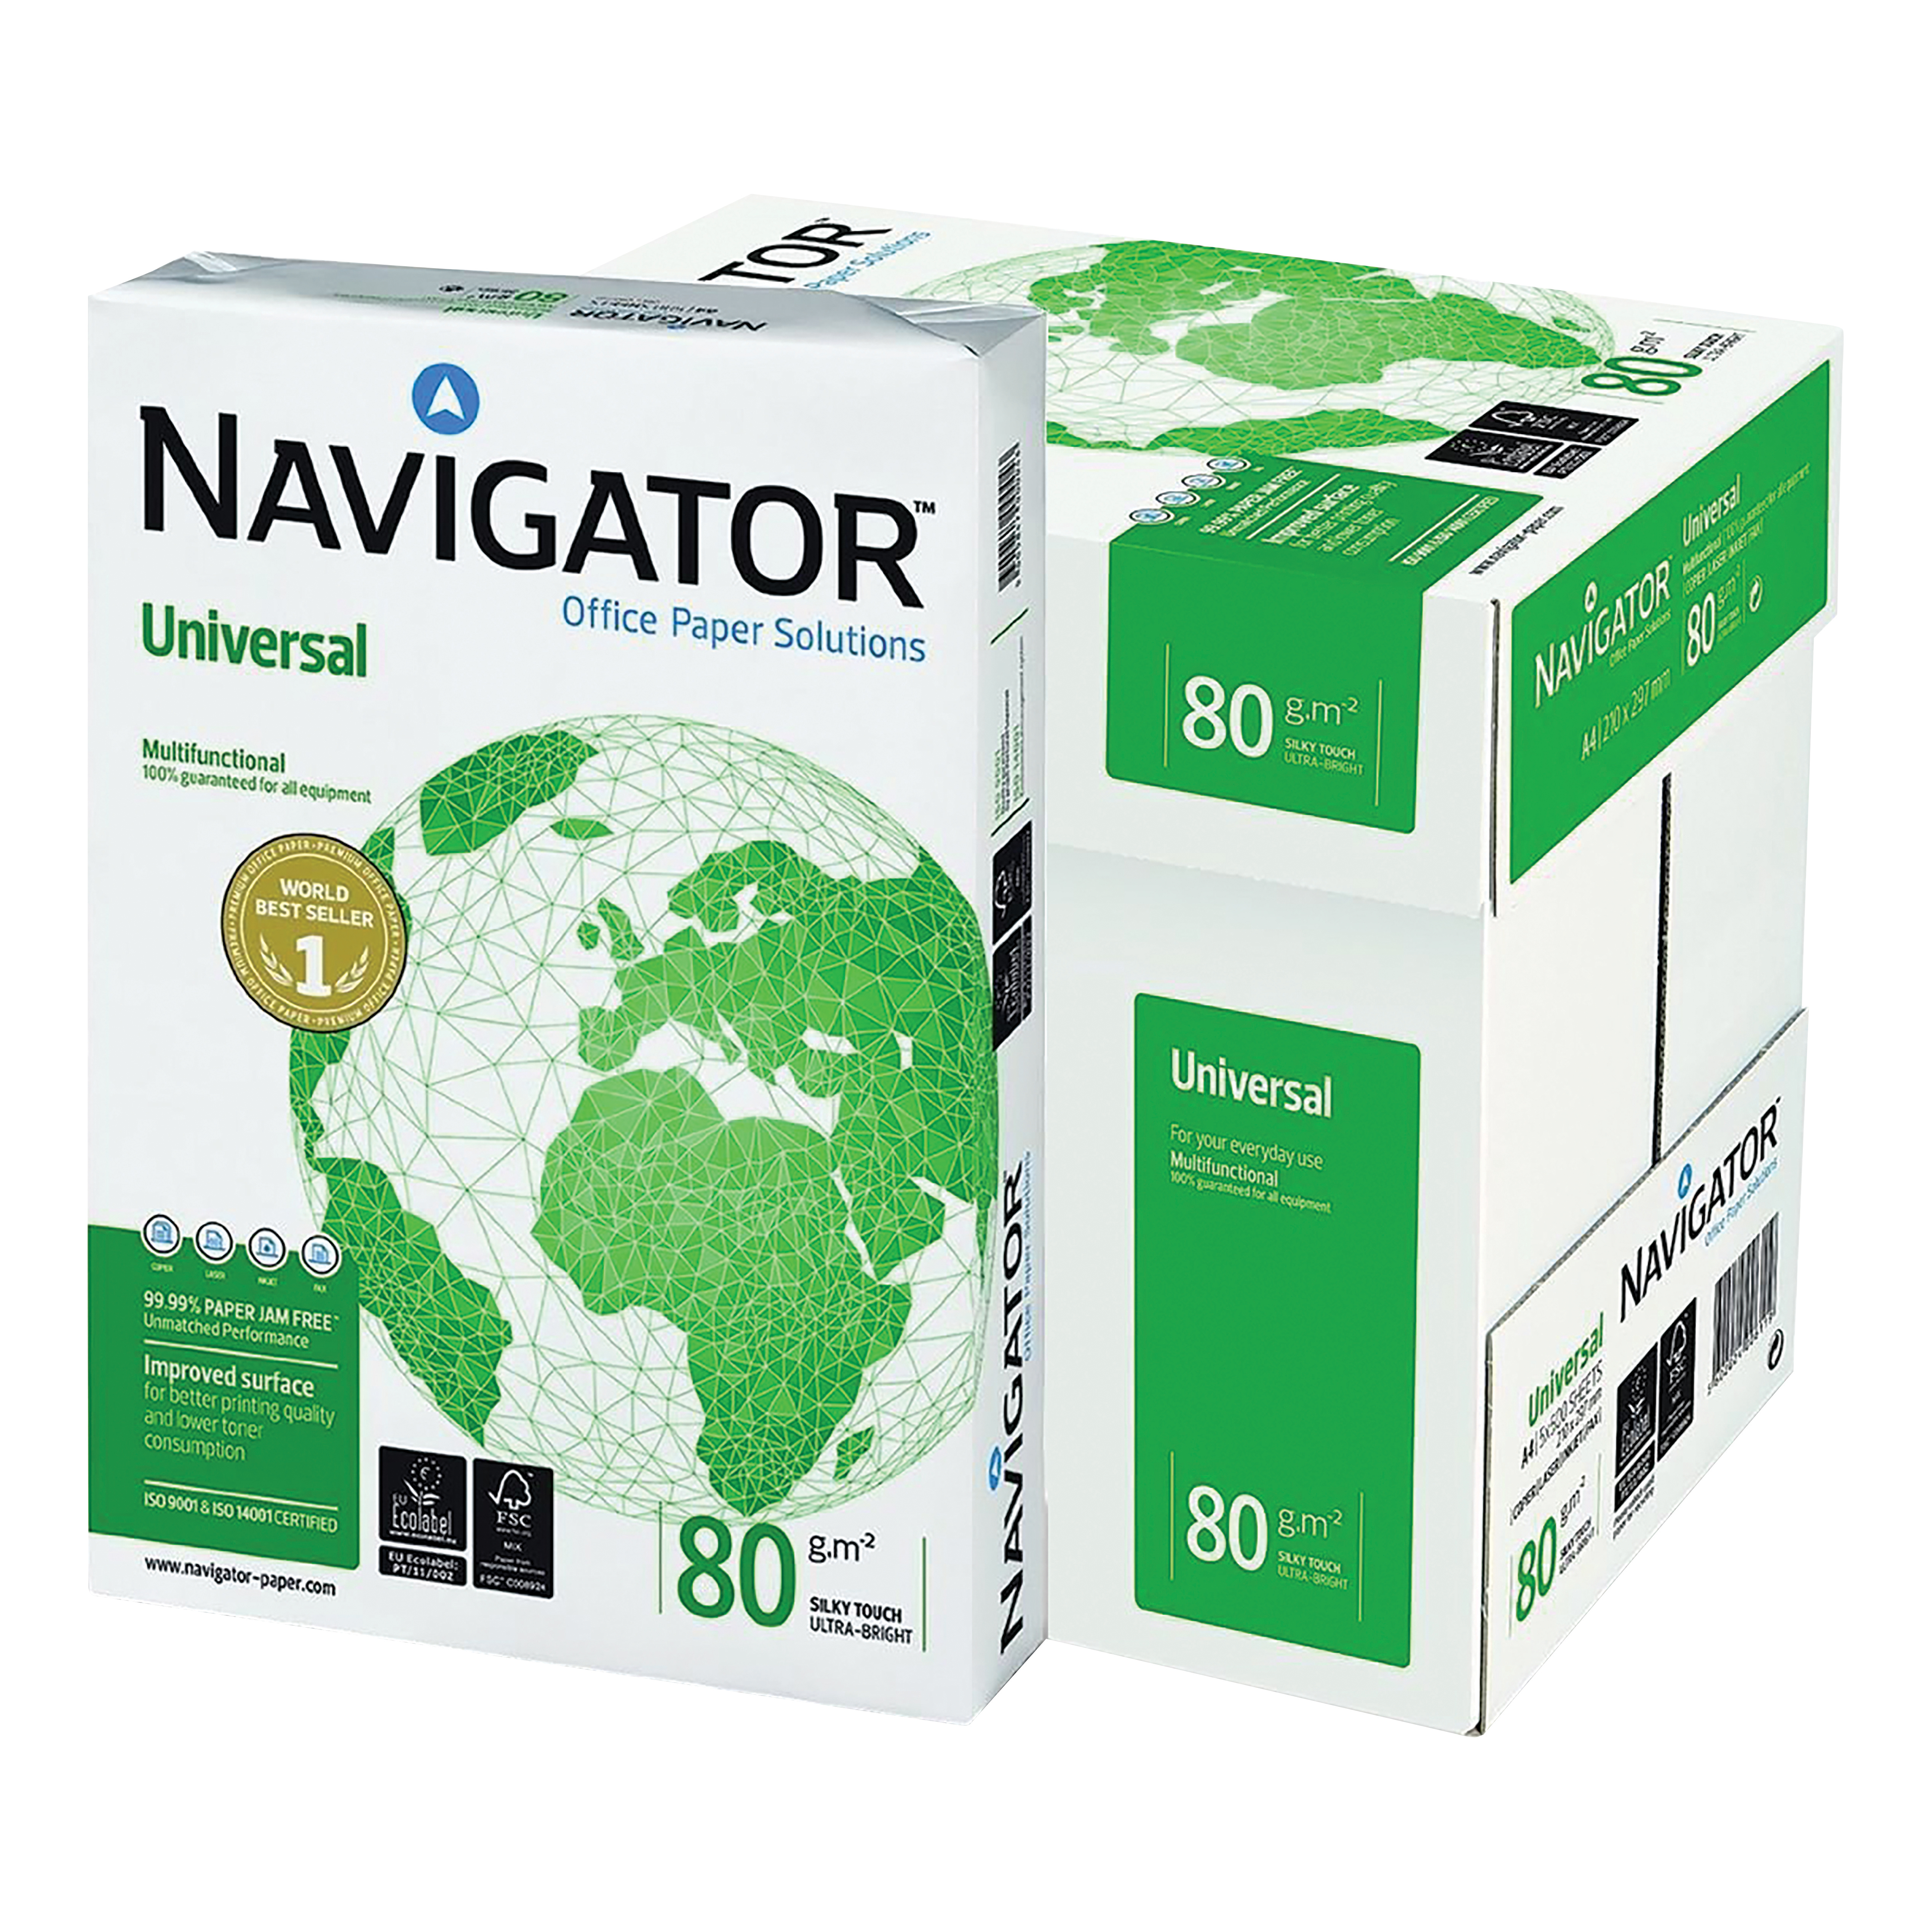 Navigator Universal Paper Multifunctional Ream-Wrapped 80gsm A4 White Ref NUN0800033 [5 x 500 Sheets]